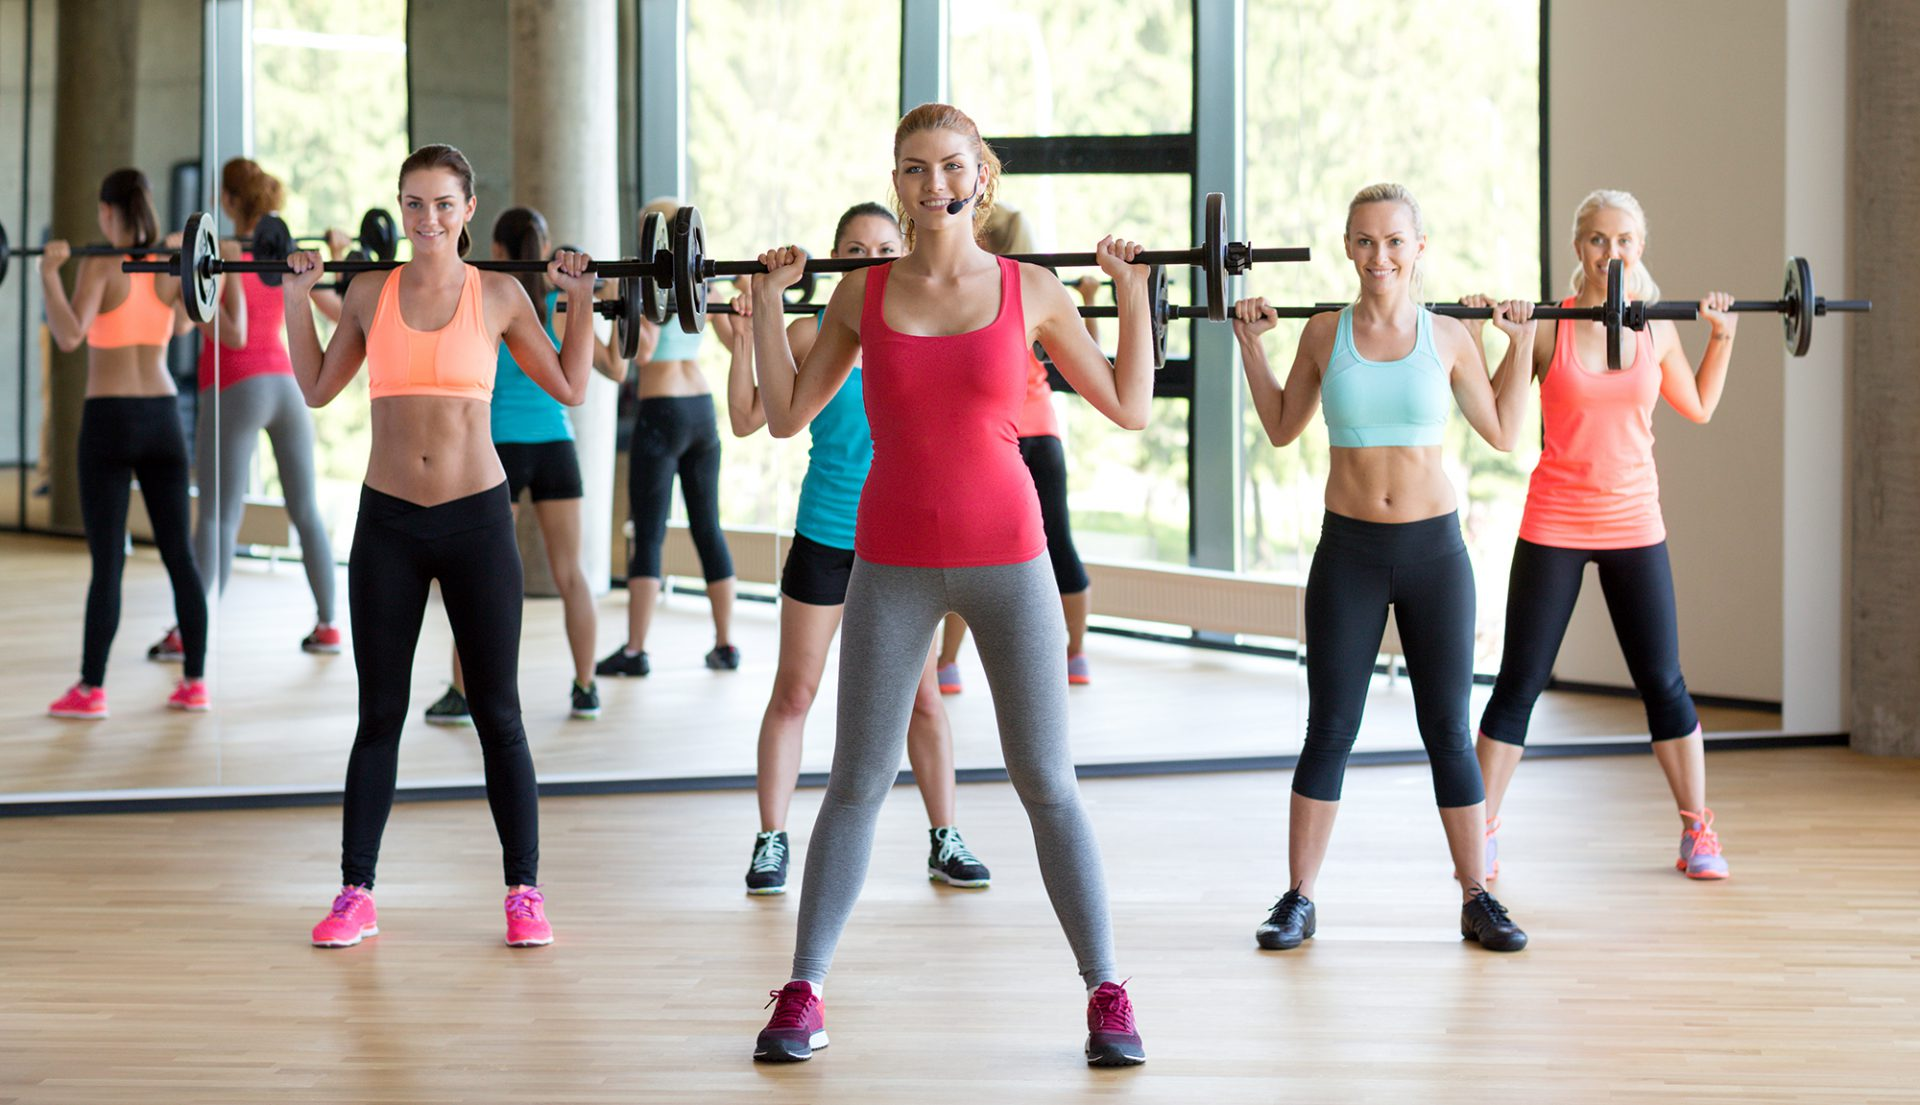 Increasing Gym Member Retention and Revenue with Body Composition